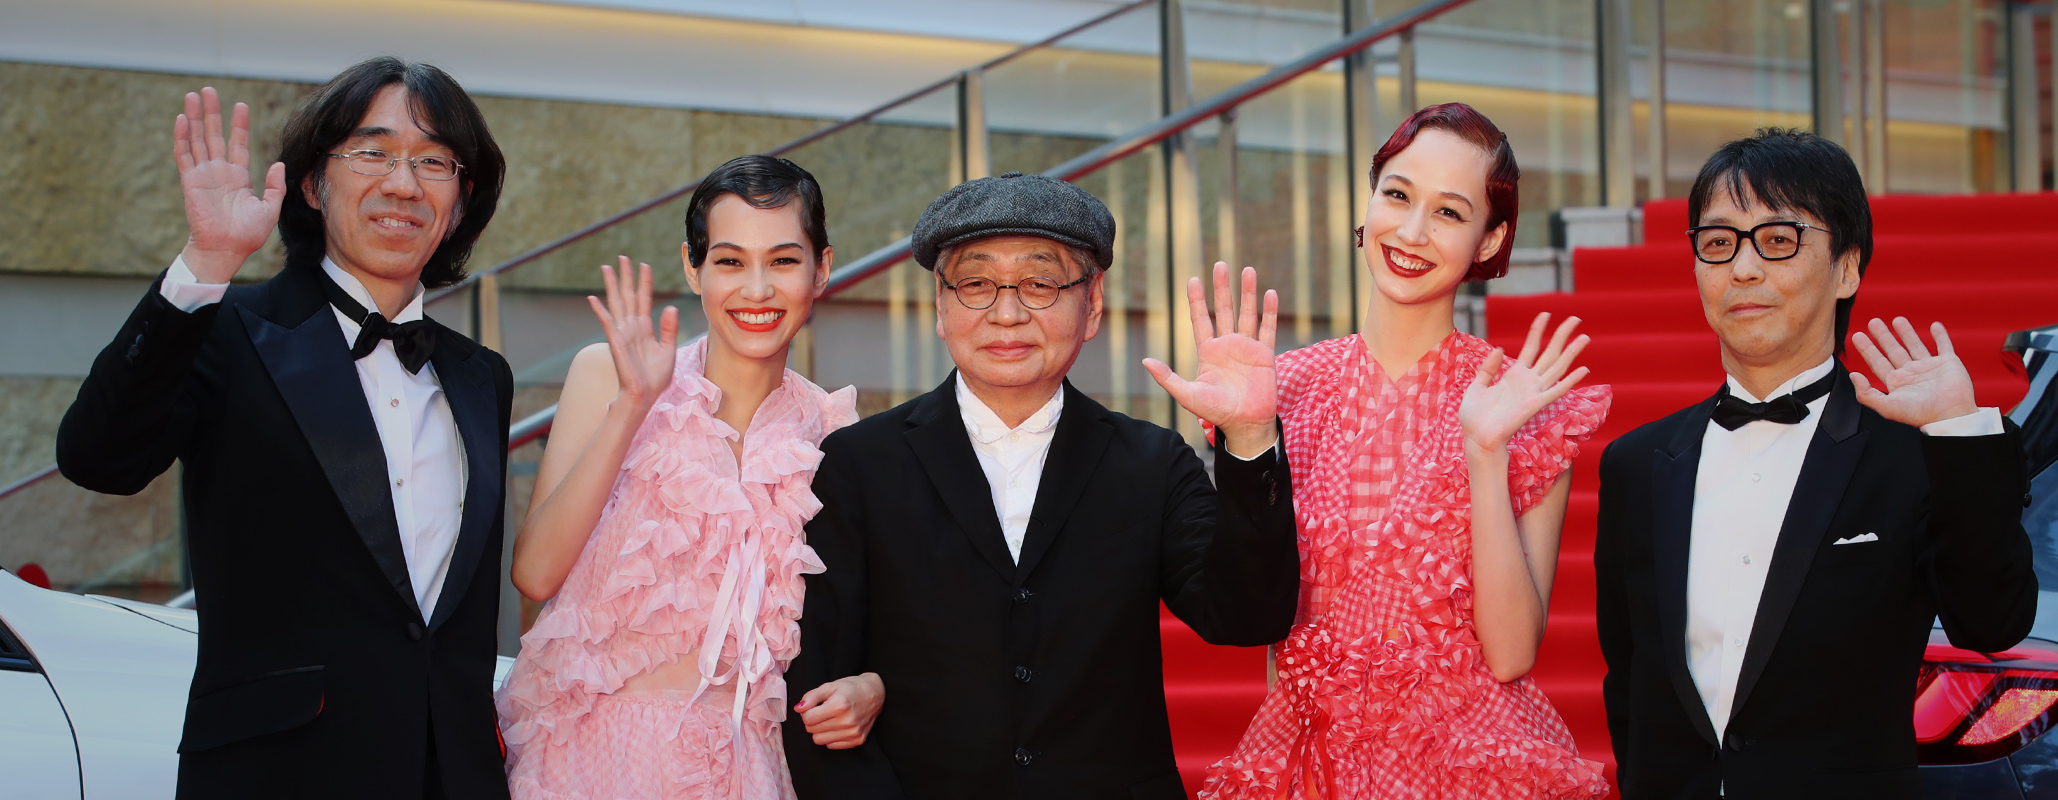 "Opening event Red Carpet, ""NO-SMOKING"" Haruomi Hosono, Kiko Mizuhara, Yuka Mizuhara"